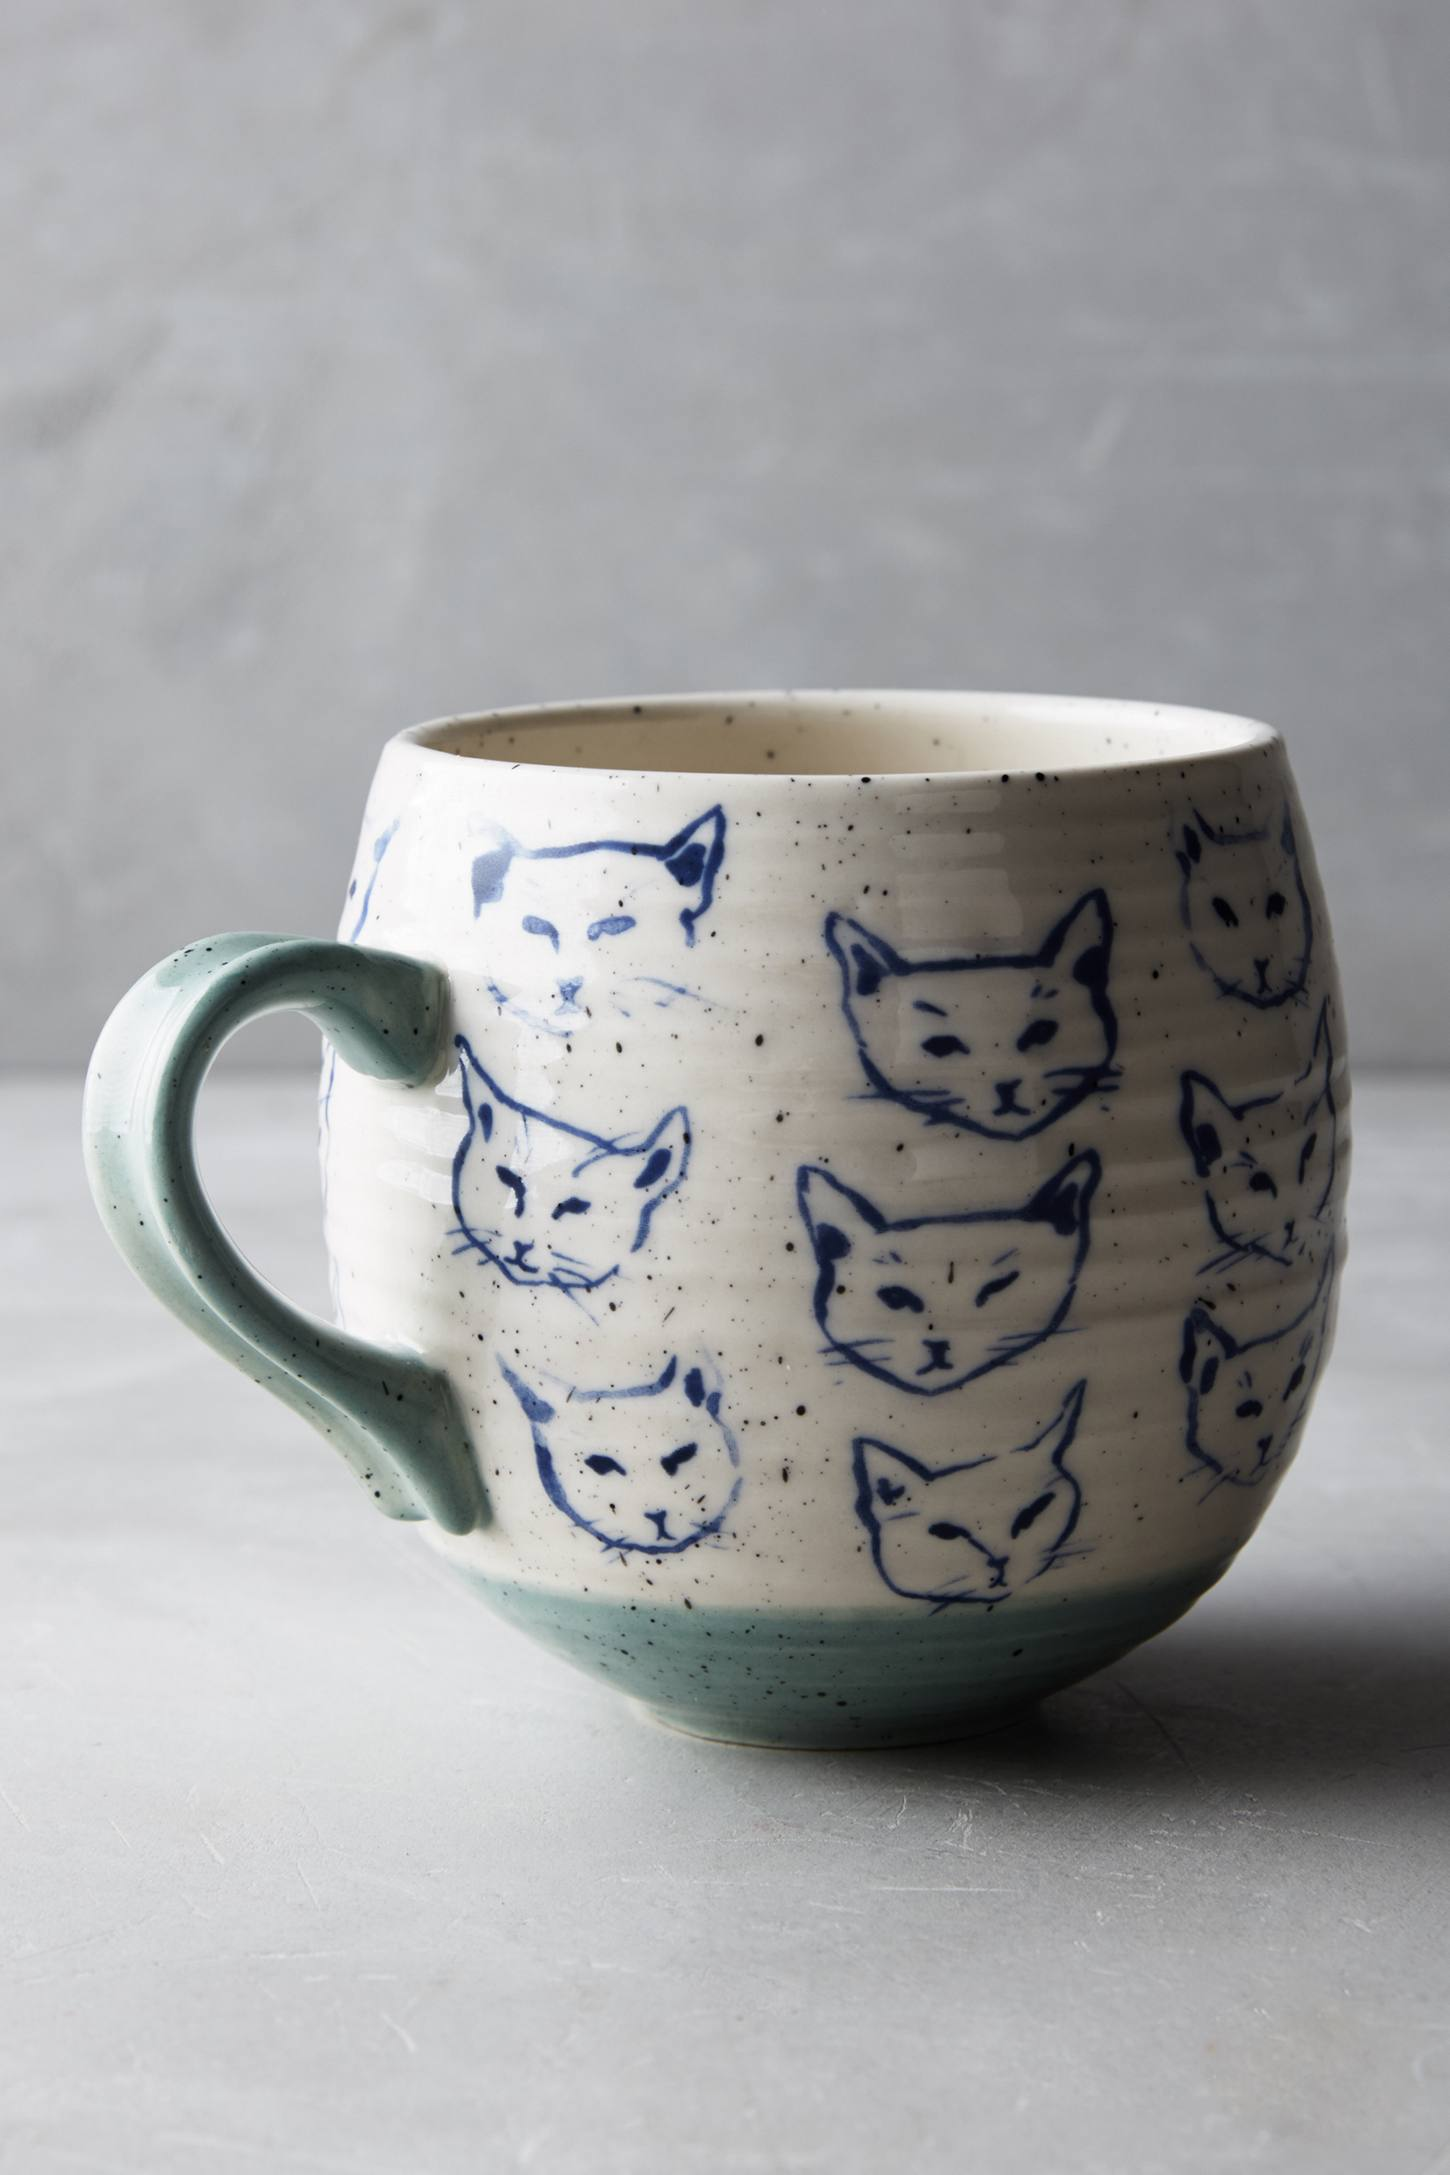 Slide View: 1: Cat Study Mug